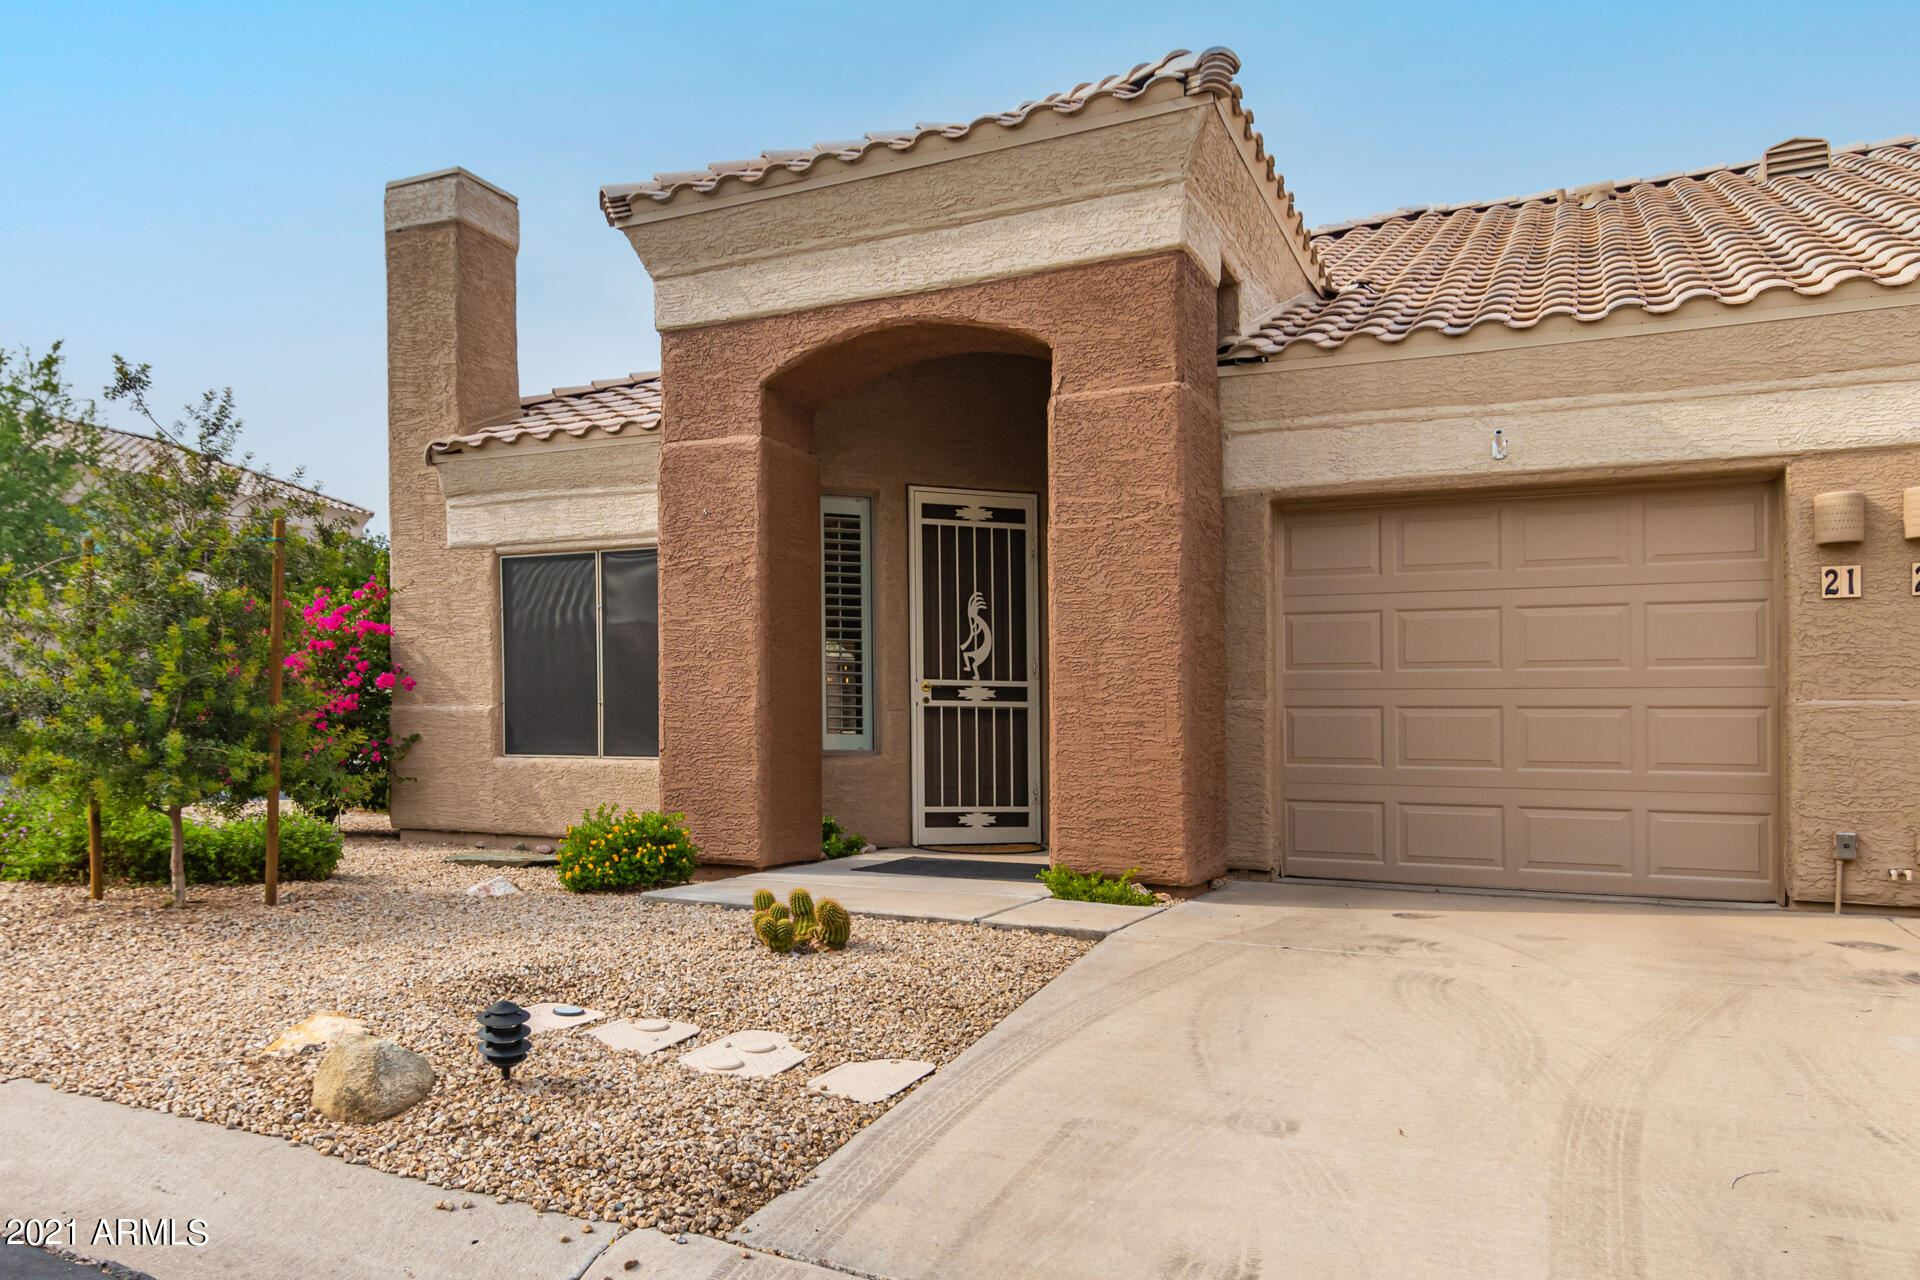 Photo of 16450 E AVE OF THE FOUNTAINS -- #21, Fountain Hills, AZ 85268 (MLS # 6269393)